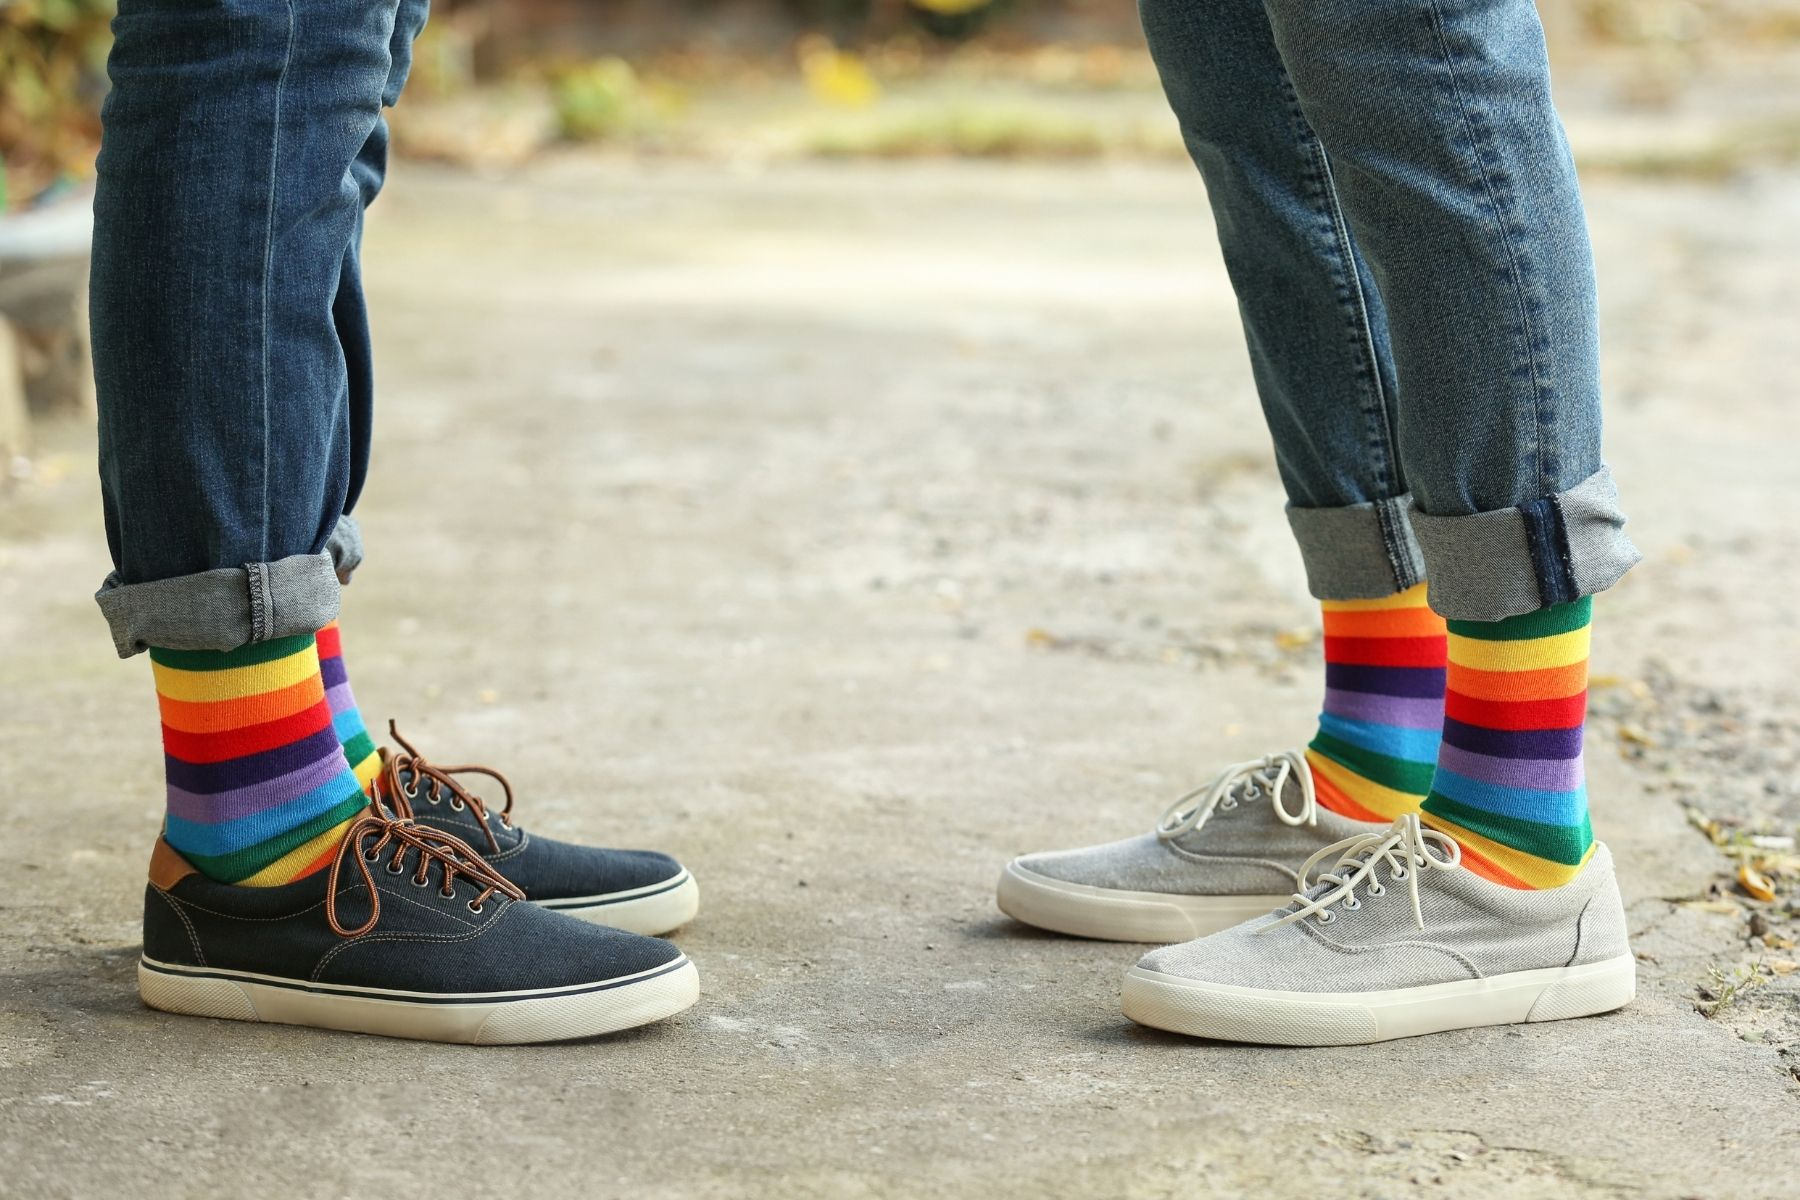 """The 15 Best Gay Socks That Let The World Know """"I'm Gay And Proud!"""""""